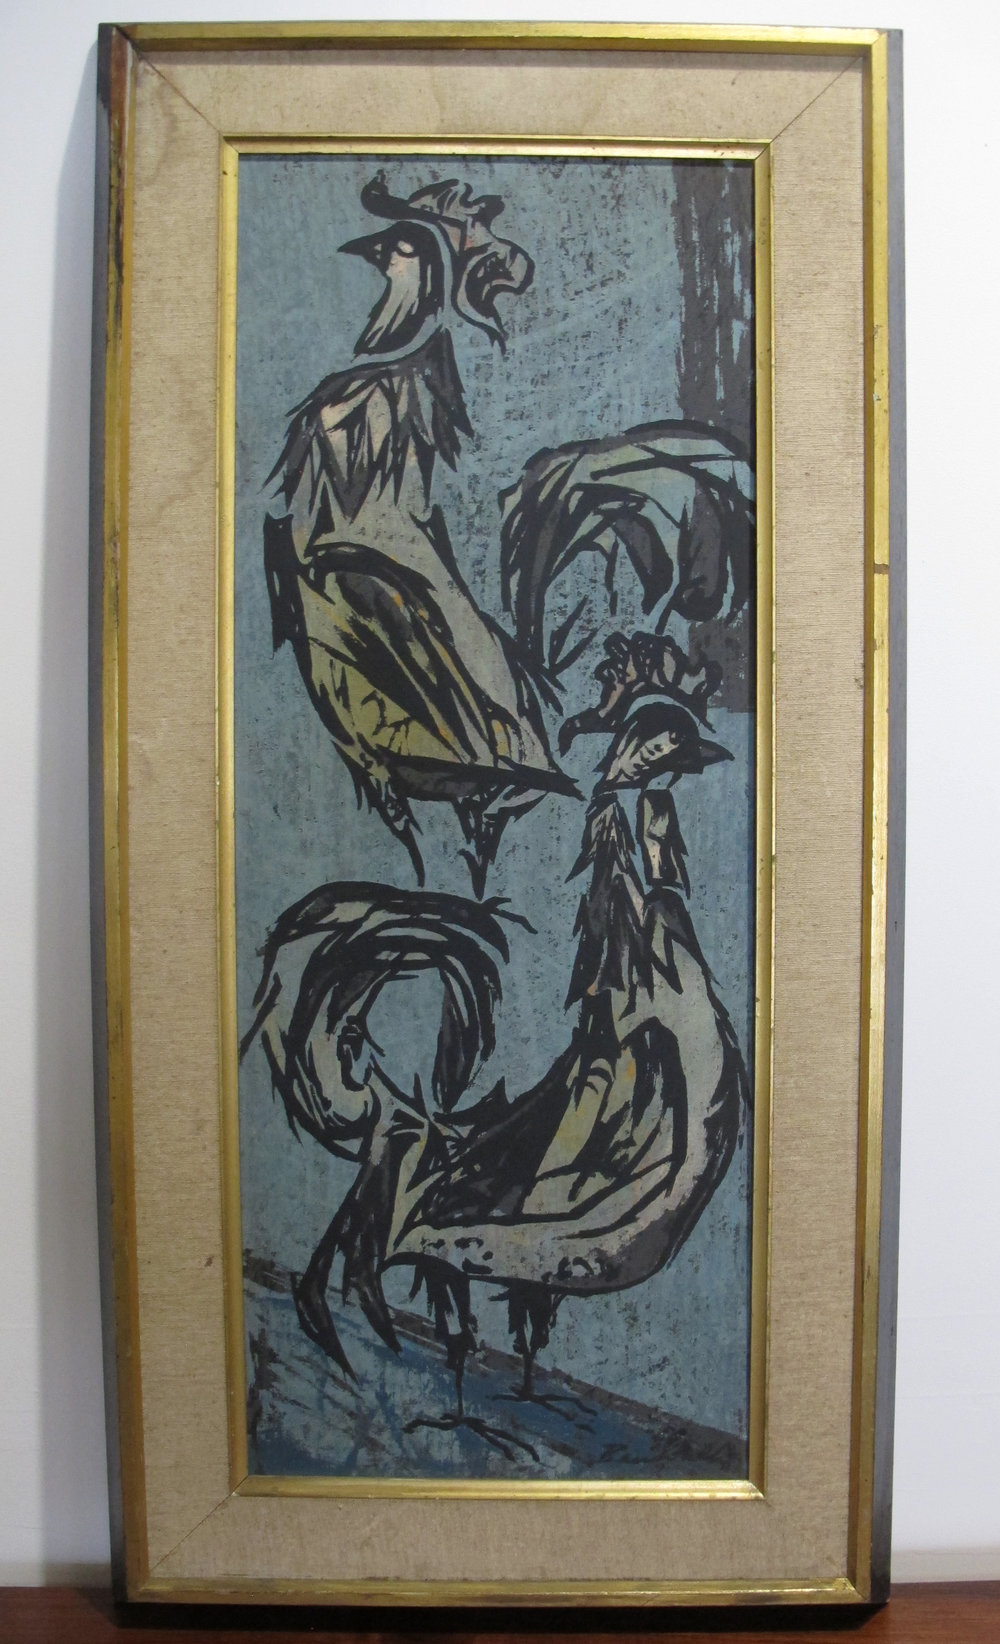 MID CENTURY FRAMED PAINTING OF ROOSTERS